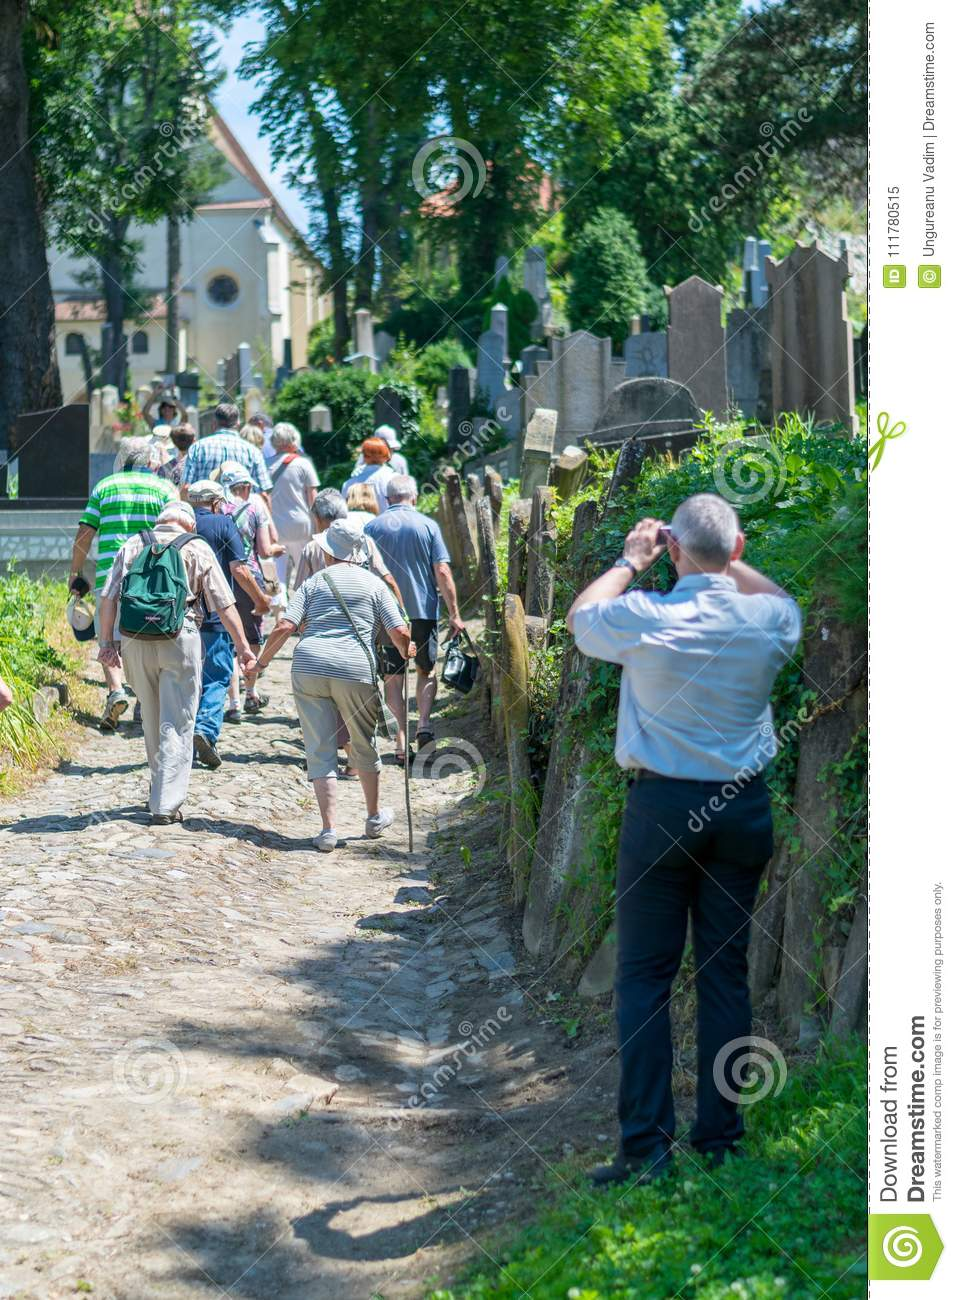 SIGHISOARA, ROMANIA - 1 JULY 2016: Tourists visiting the Saxon cemetery, located next to the Church on the Hill in Sighisoara, Rom